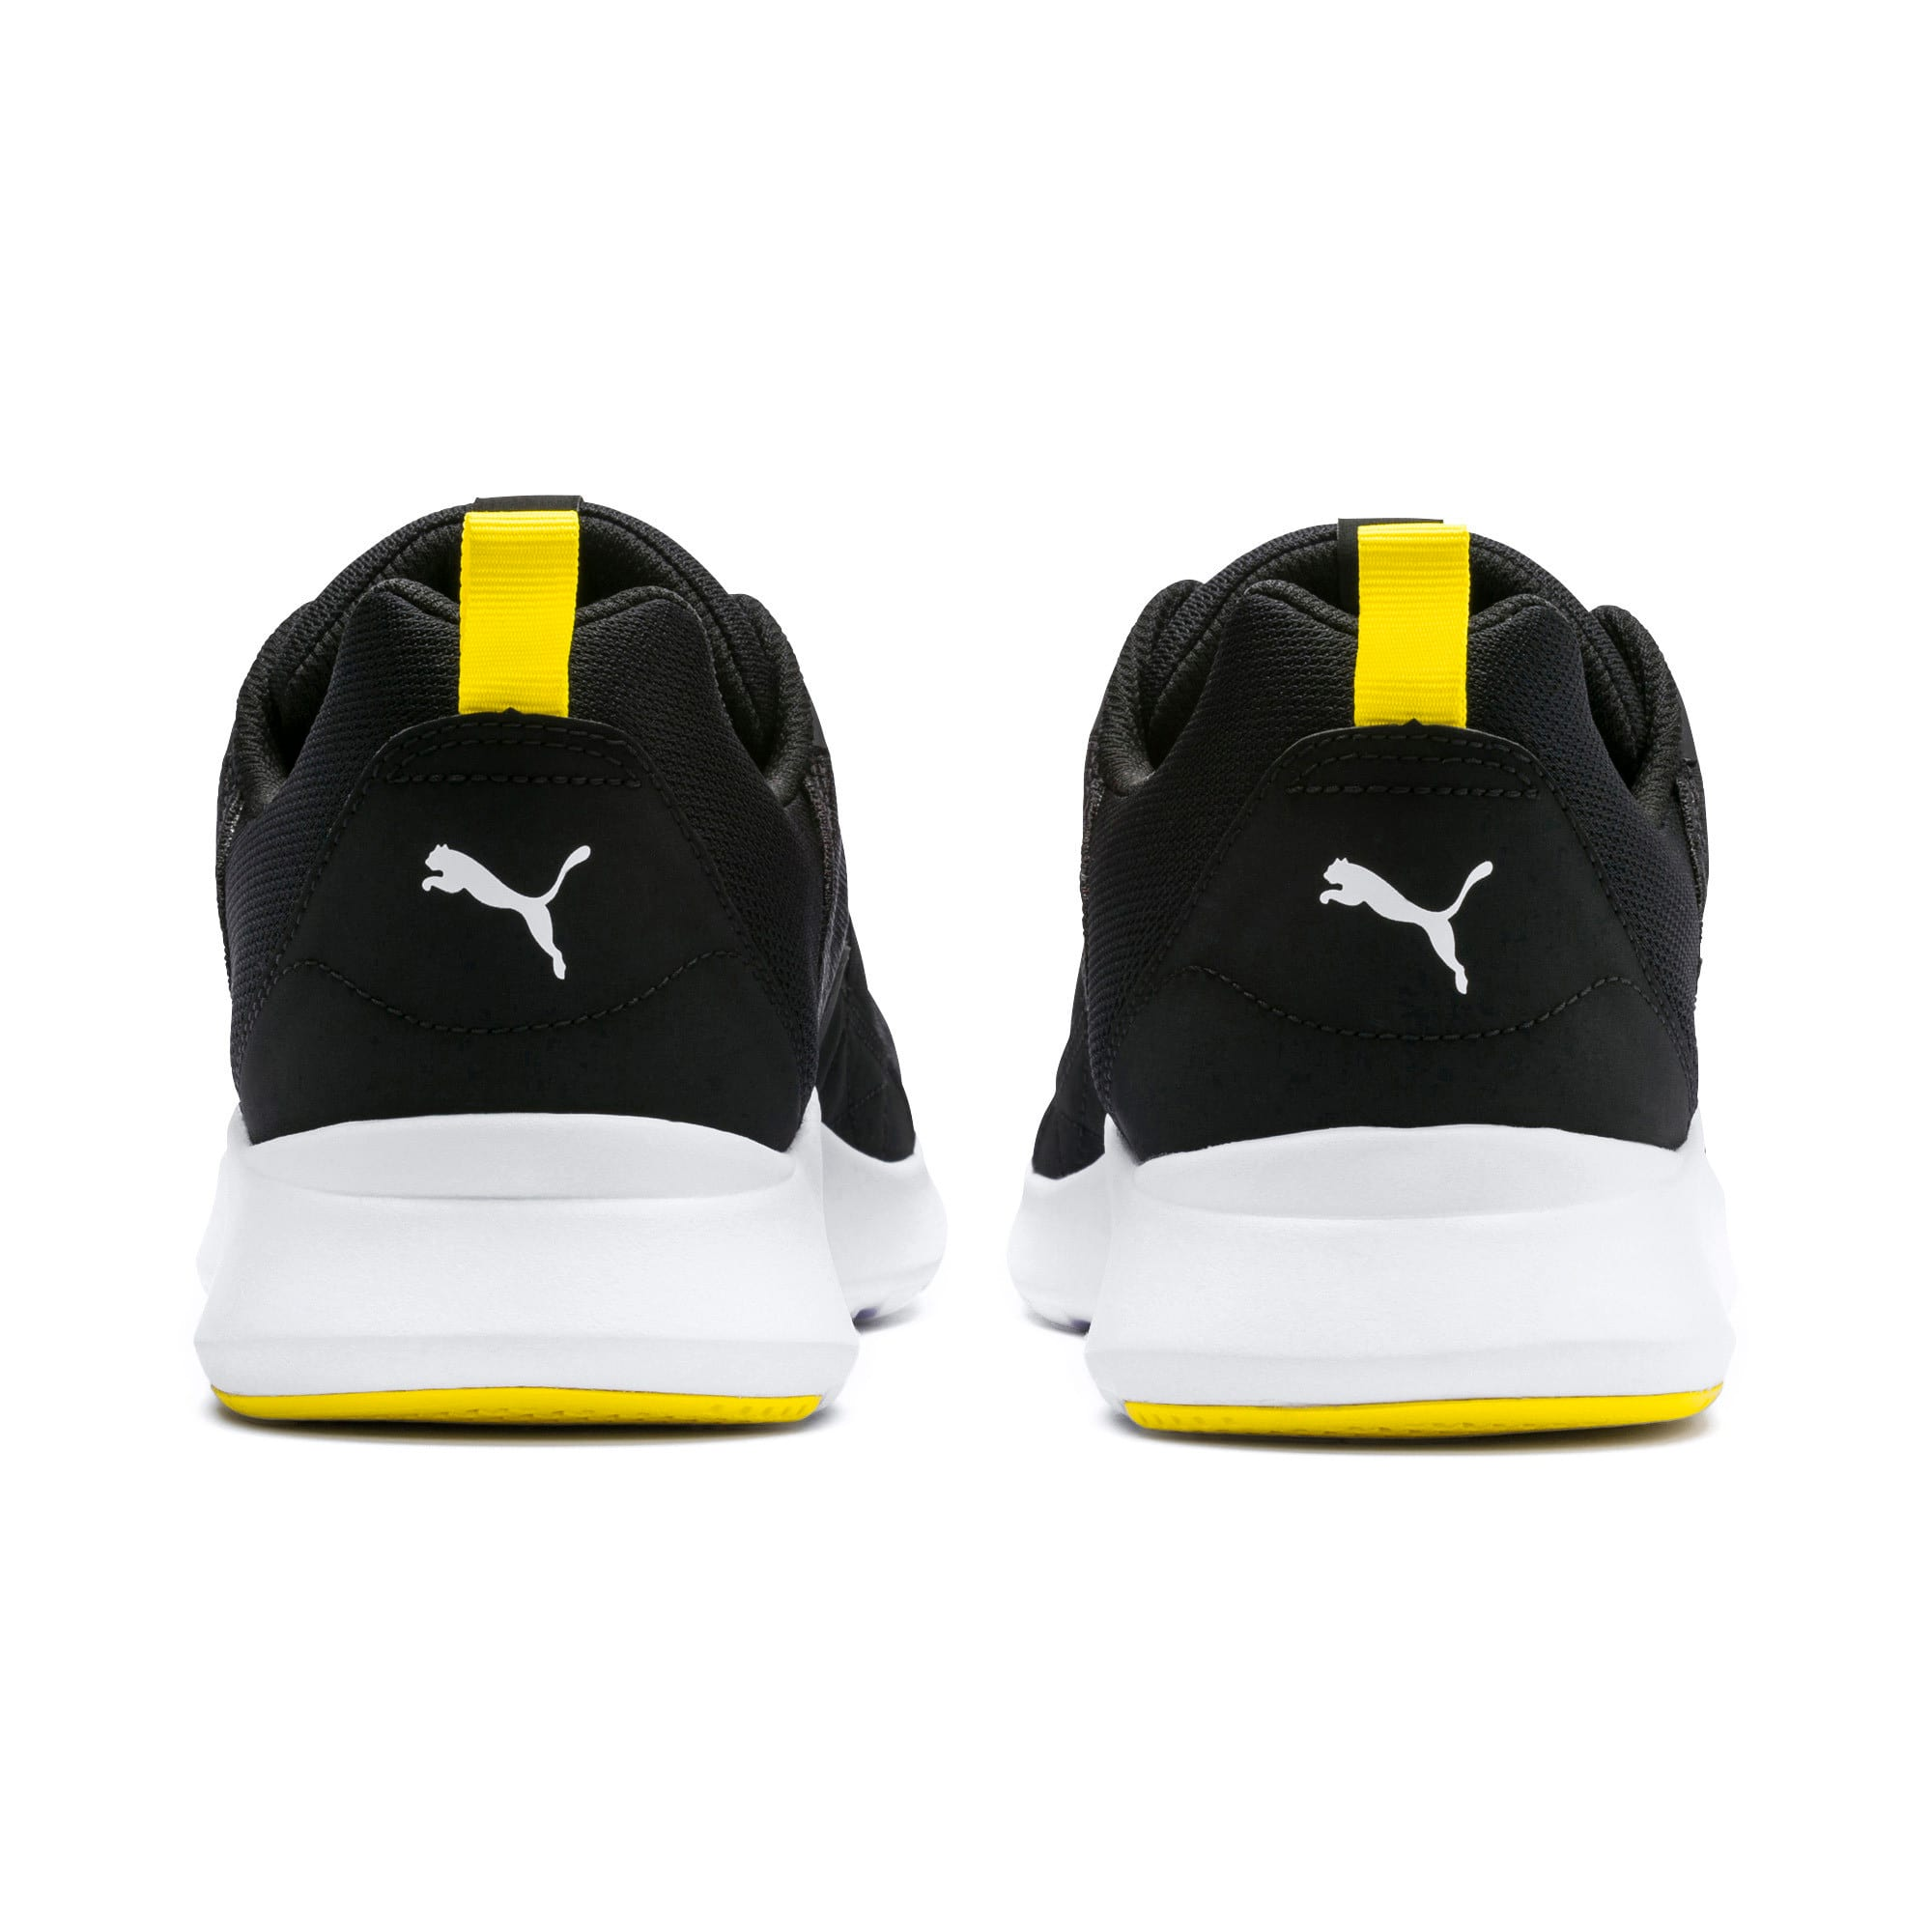 Thumbnail 3 of Wired Trainers, Puma Black-Blazing Yellow, medium-IND